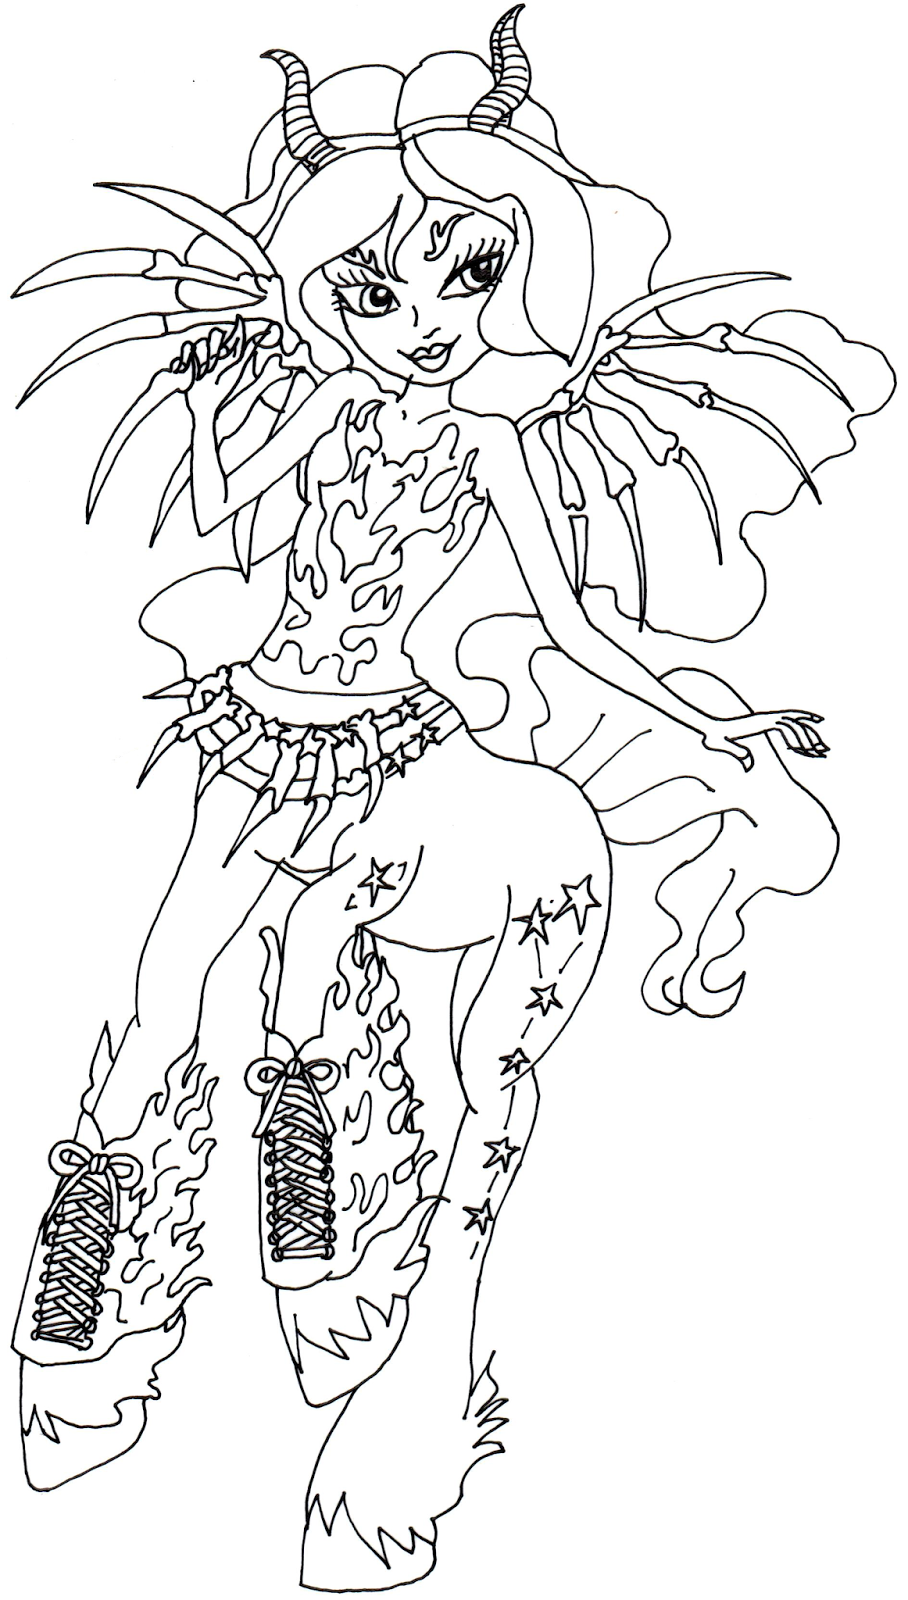 Free Printable Monster High Coloring Pages: Aery Evenfall